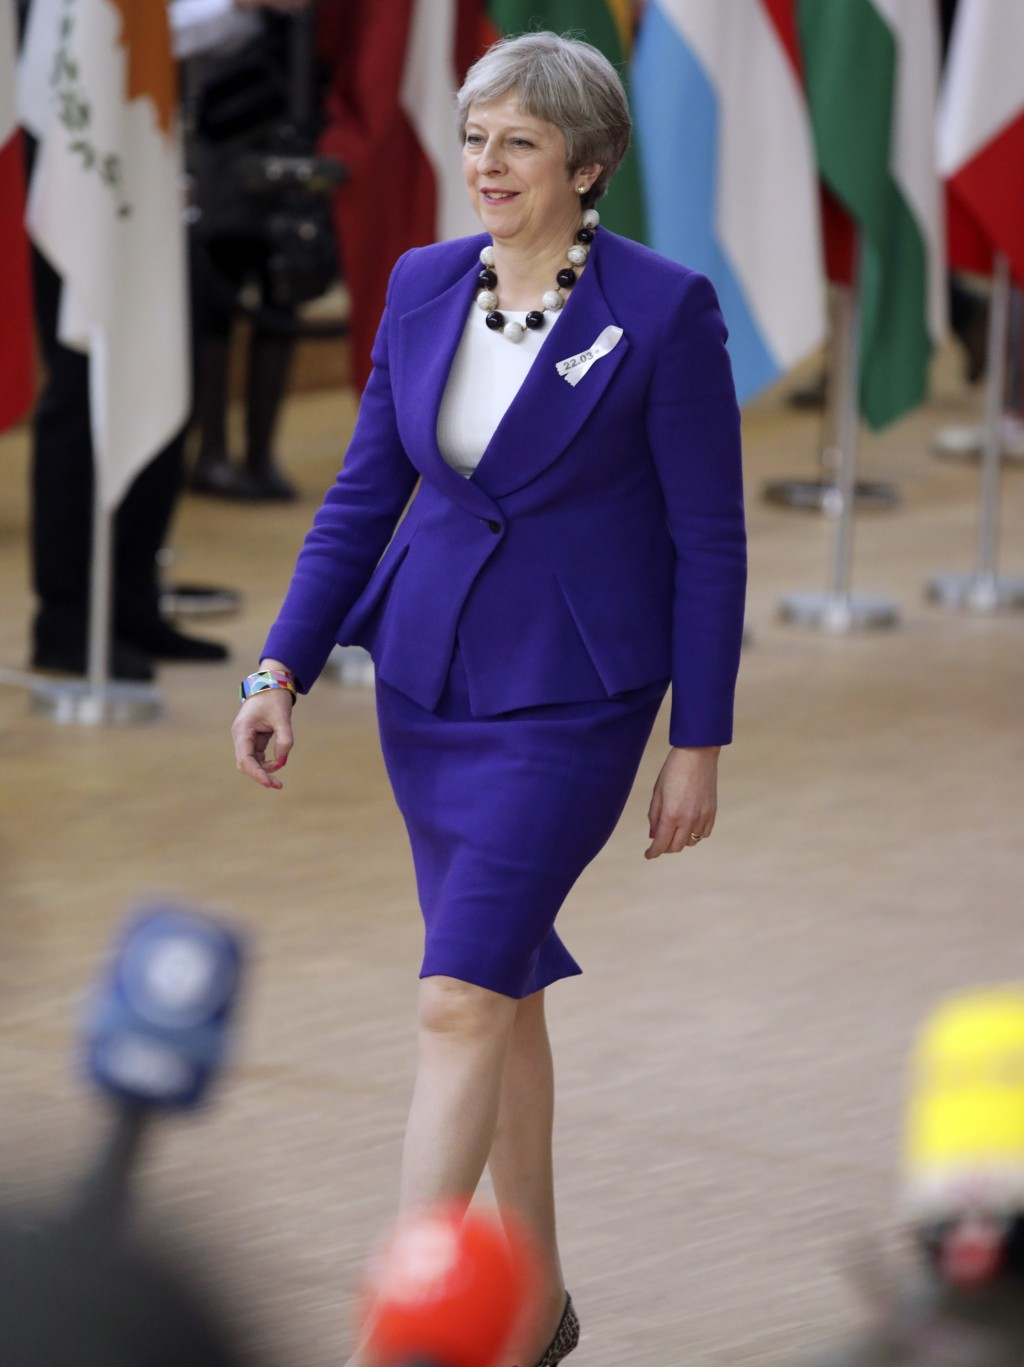 British Prime Minister Theresa May arrives for an EU summit at the Europa building in Brussels on Thursday, March 22, 2018. Leaders from the 28 Europe...